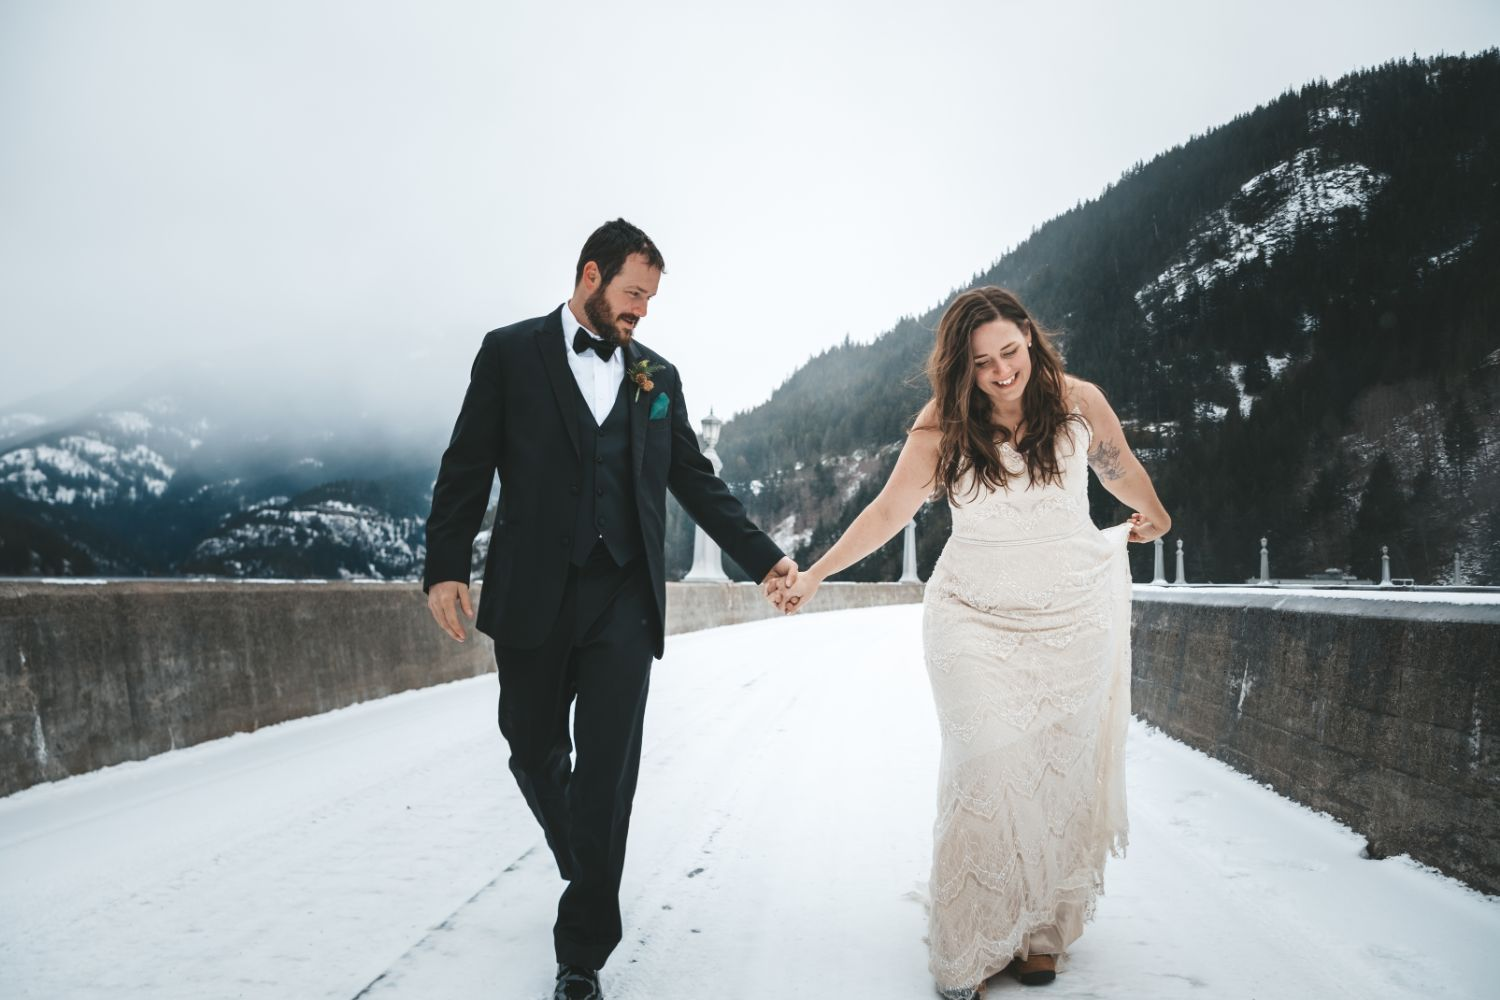 bride-groom-walk-snowy-mountains-north-cascades